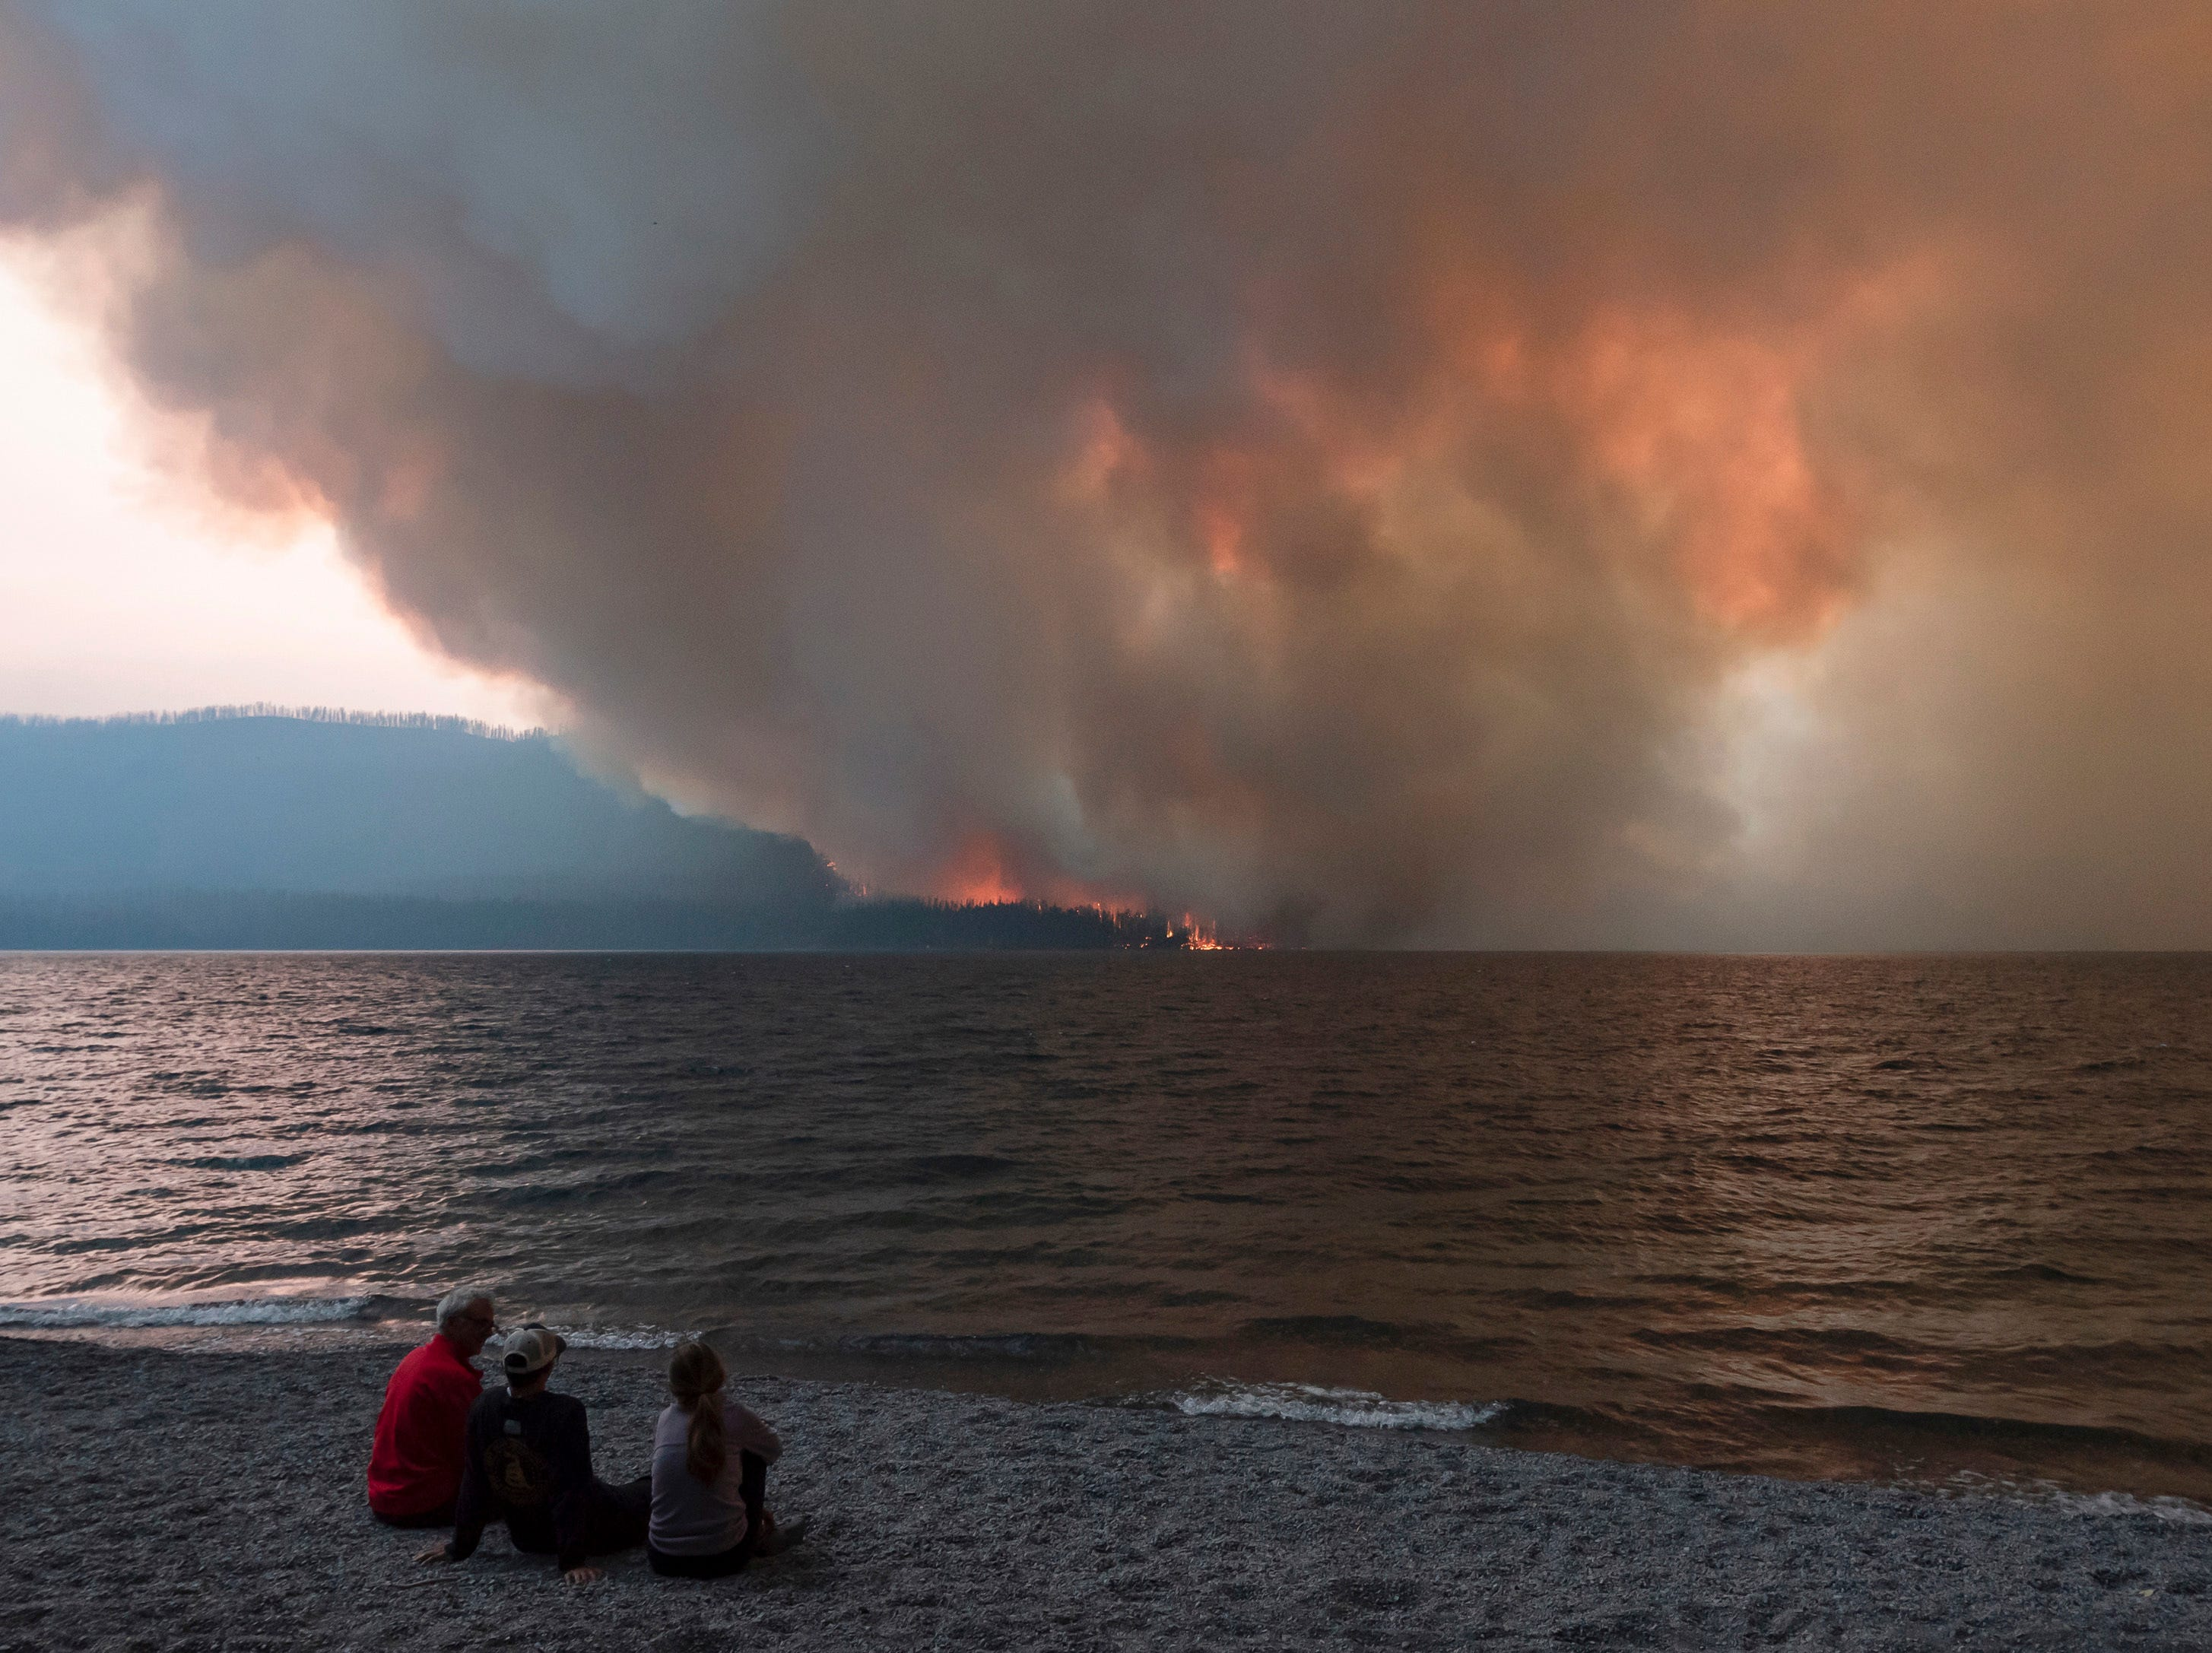 In this Sunday, Aug. 12, 2018, the Howe Ridge Fire burns at Glacier National Park, Mont. At least nine homes and cabins in a historic district of Glacier National Park have been destroyed in a wildfire that raged through the Montana park's busiest area and prompted the hasty evacuation of hundreds of visitors. Park officials said Tuesday, Aug. 14, 2018, that the lost buildings include the so-called Big House at Kelly's Camp, a resort developed early last century serving auto travelers along Glacier's famous Going-to-the-Sun Road. (Kristy Pancoast via AP)